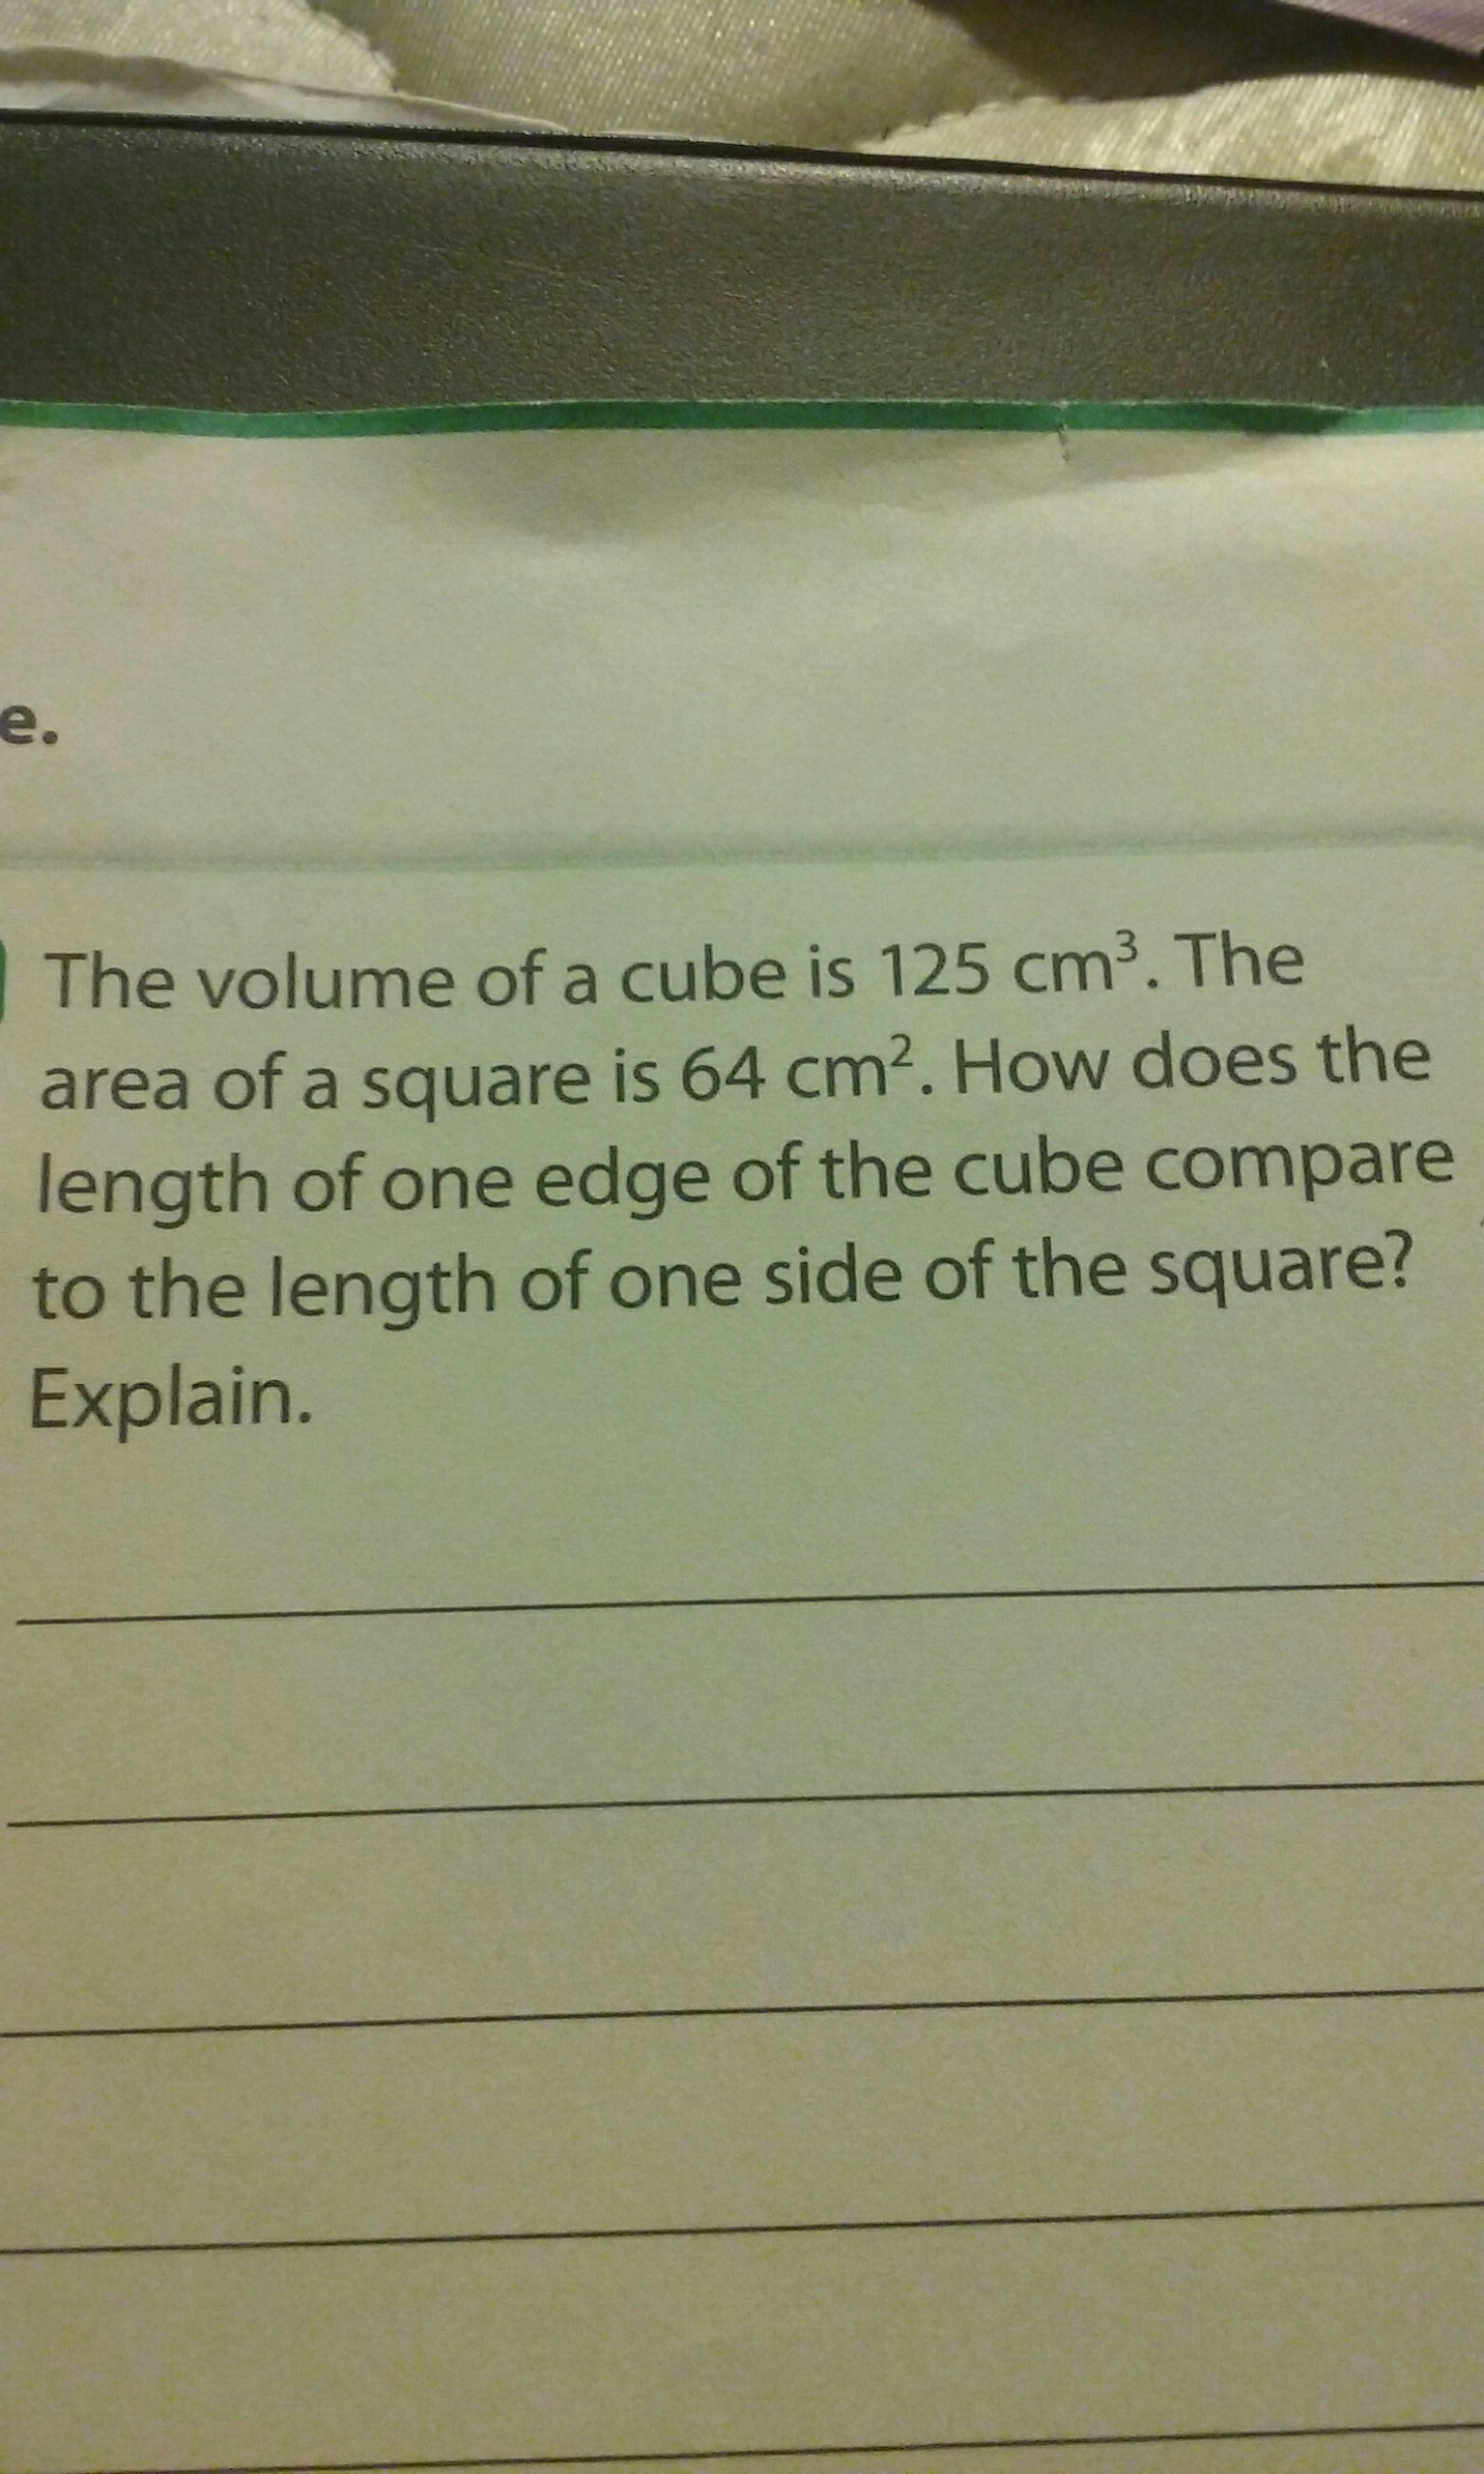 The volume of a cube is 125 cm^3. The area of a square is ...